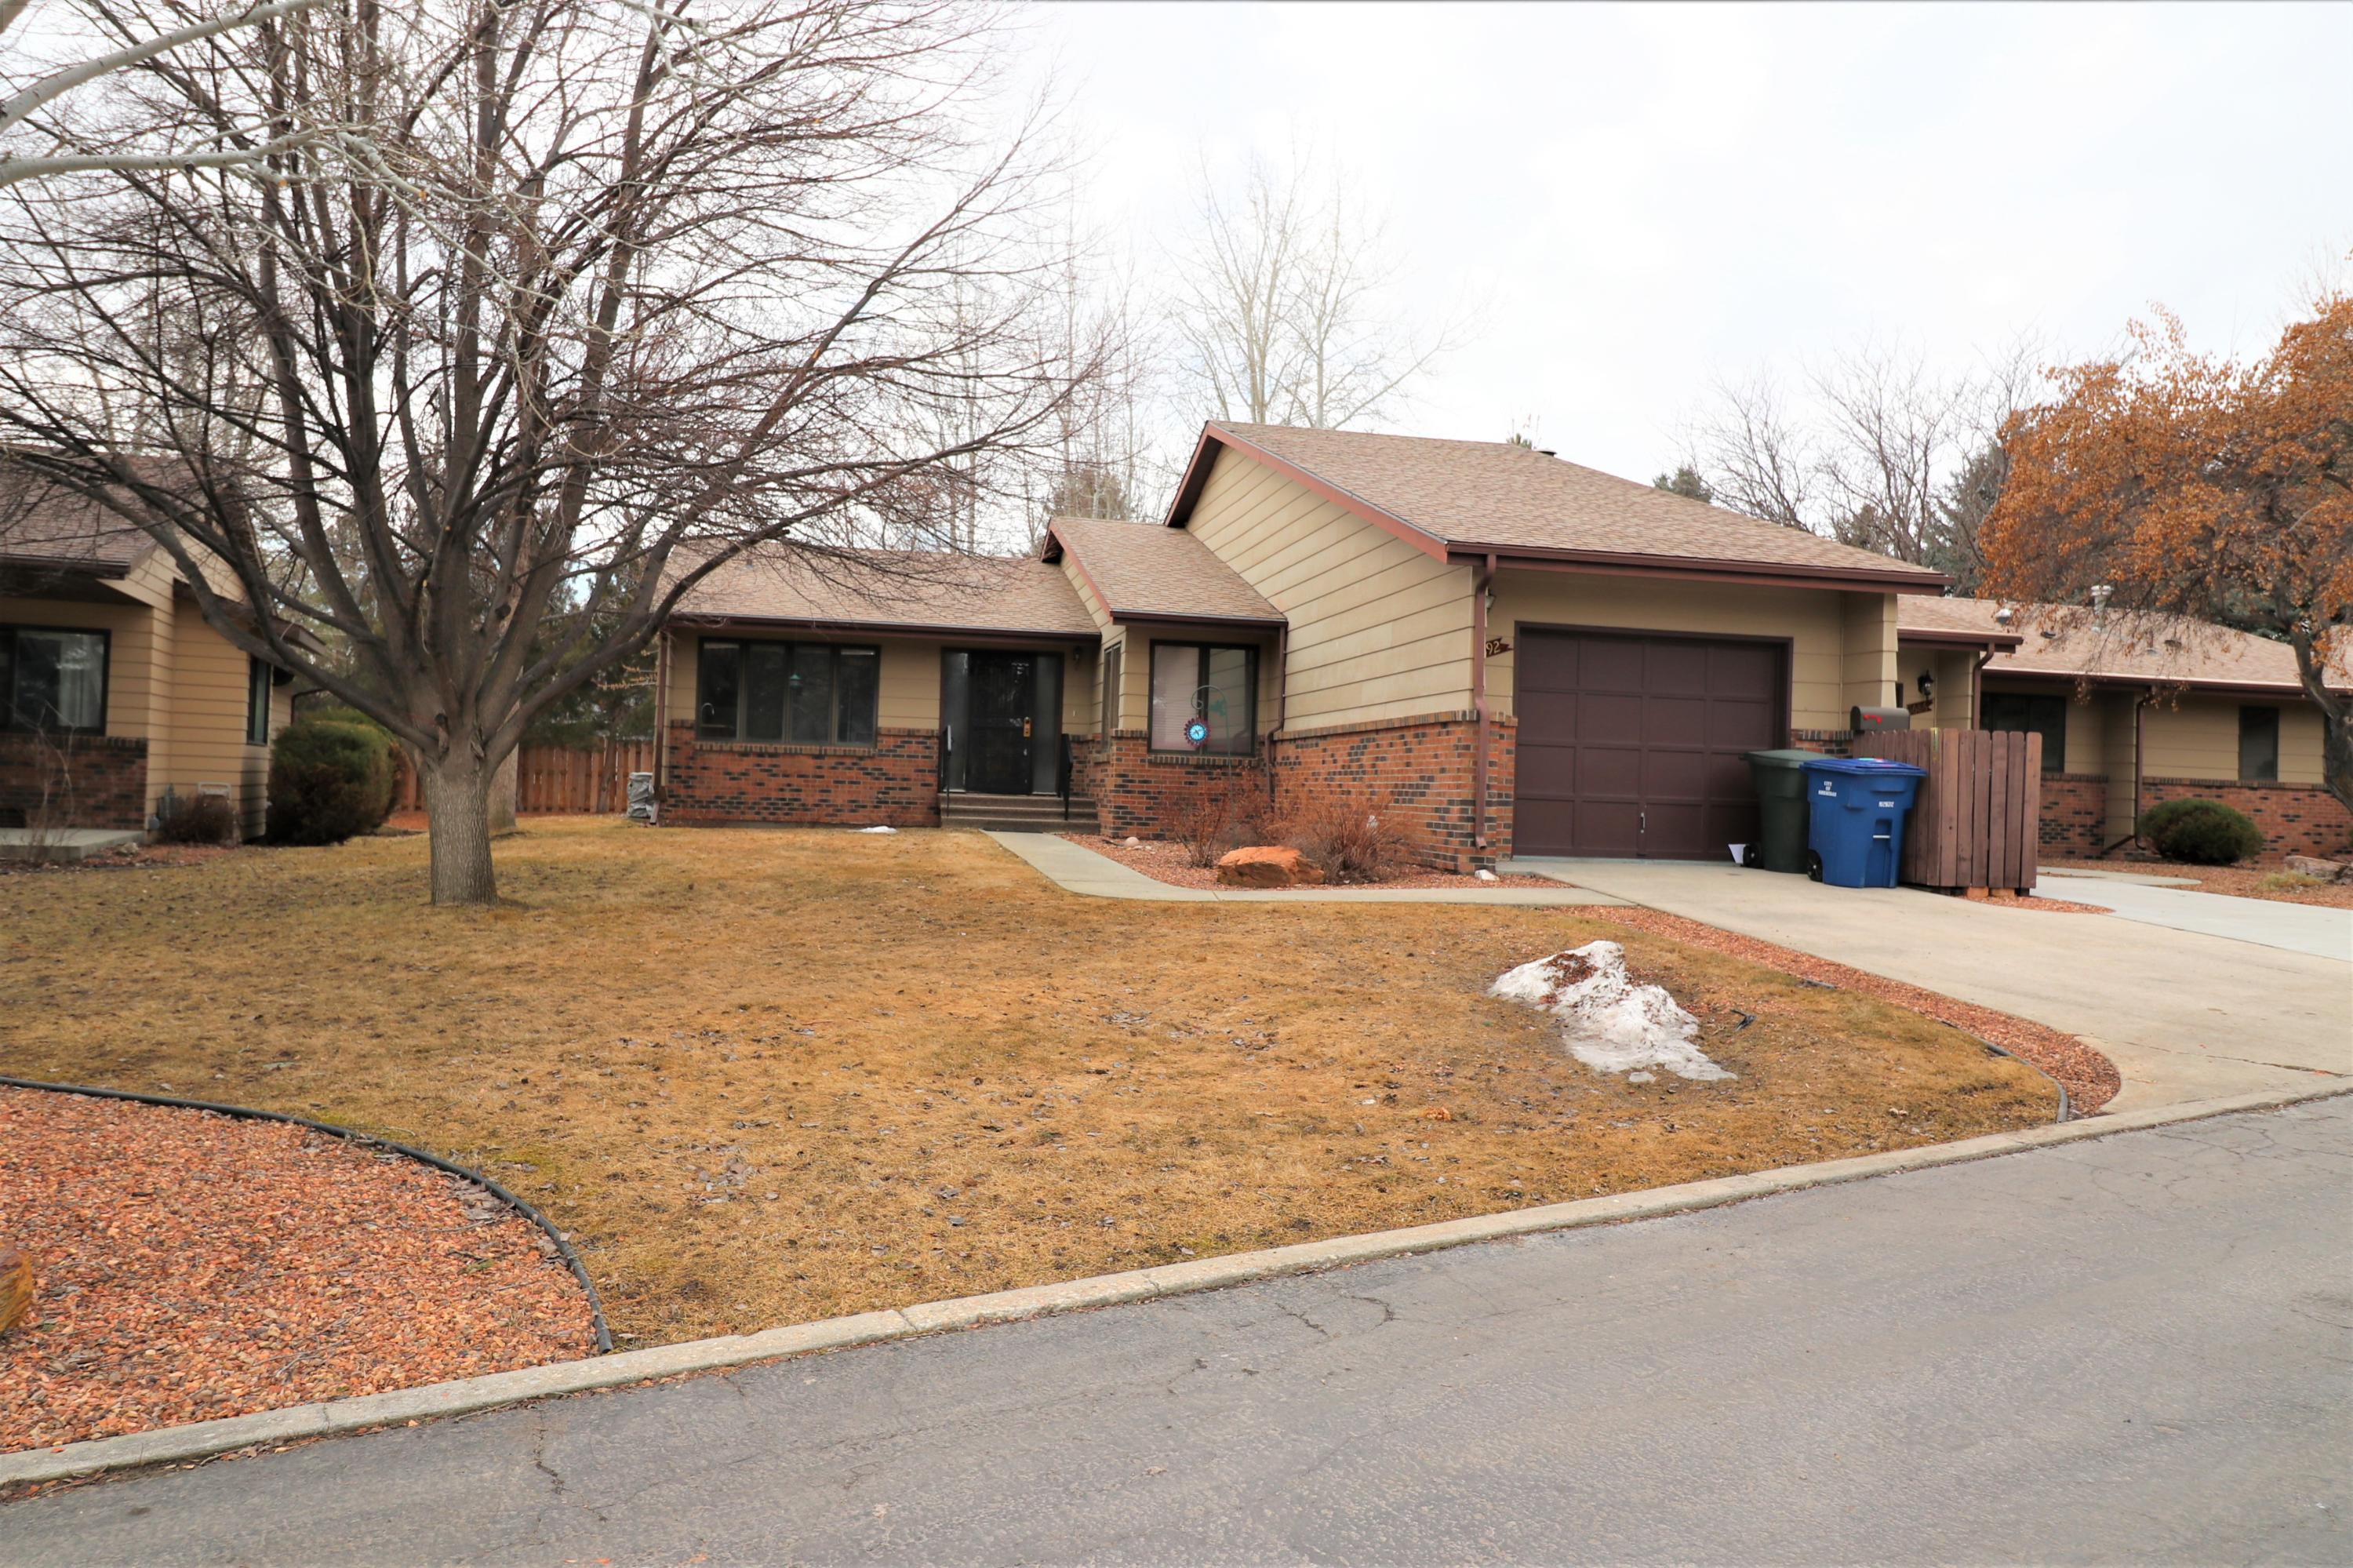 1692 Colony Park Drive, Sheridan, Wyoming 82801, 2 Bedrooms Bedrooms, ,2 BathroomsBathrooms,Residential,For Sale,Colony Park,19-291